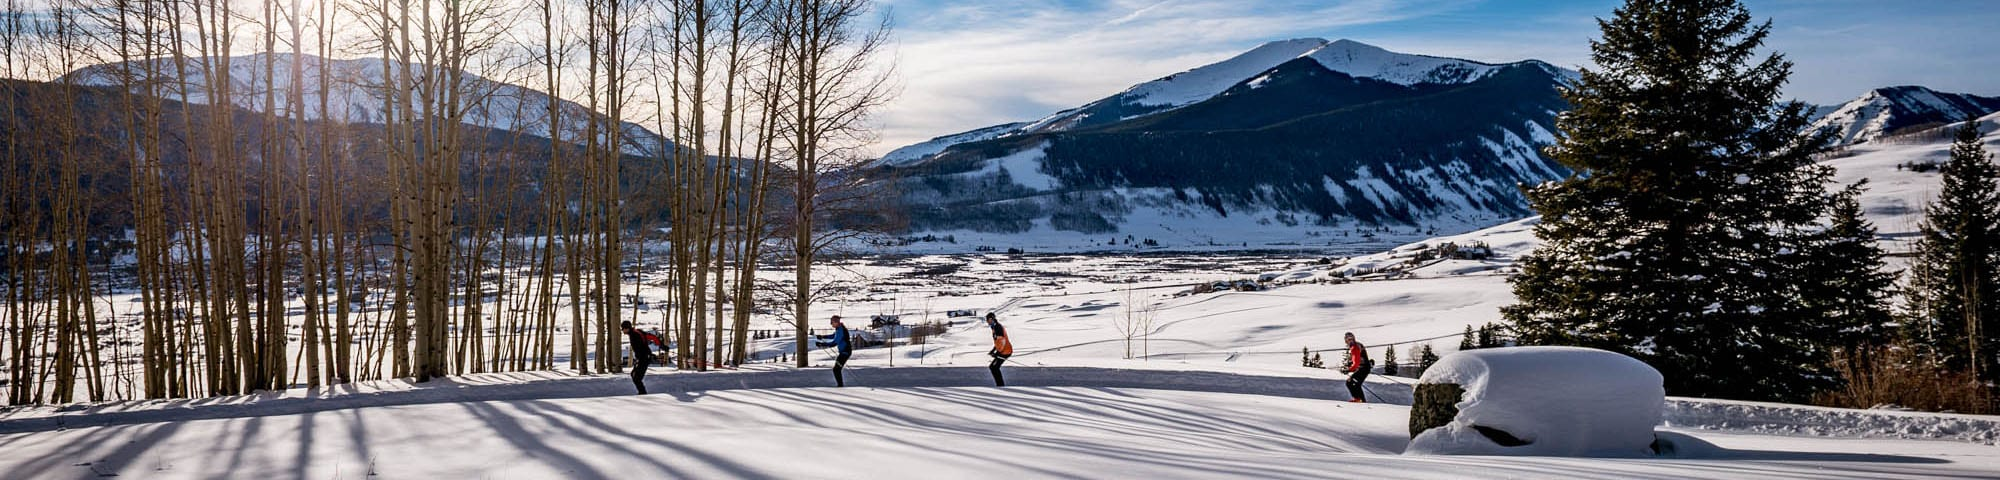 Nordic Skiing in the Crested Butte Valley